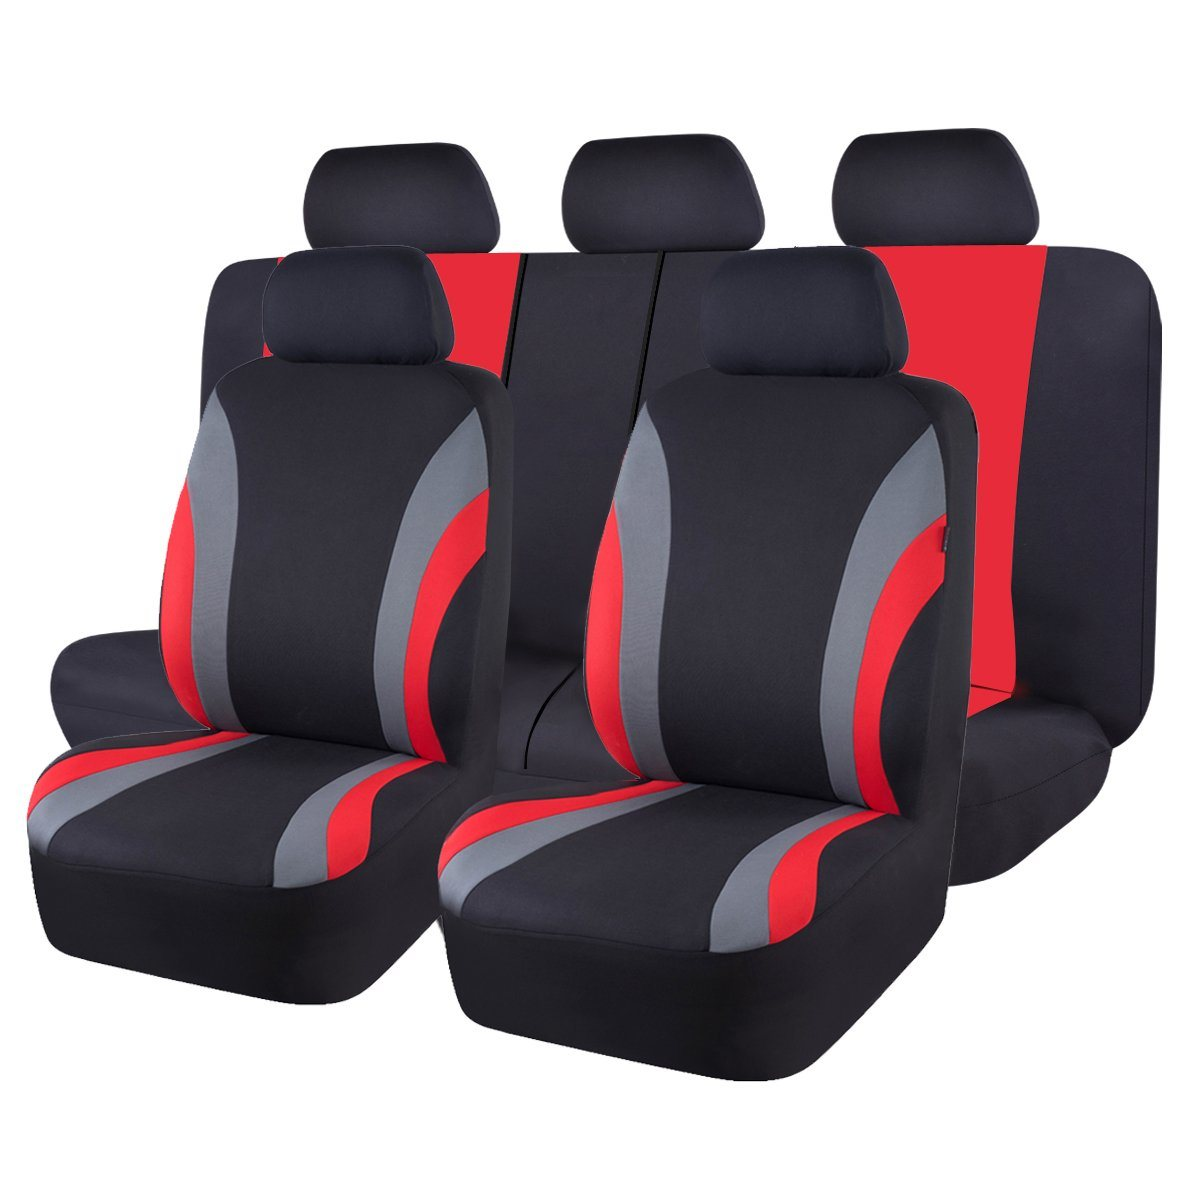 four season universal vehicles interior accessories seat cover cushion  red+black car parts interior parts & furnishings  touraco